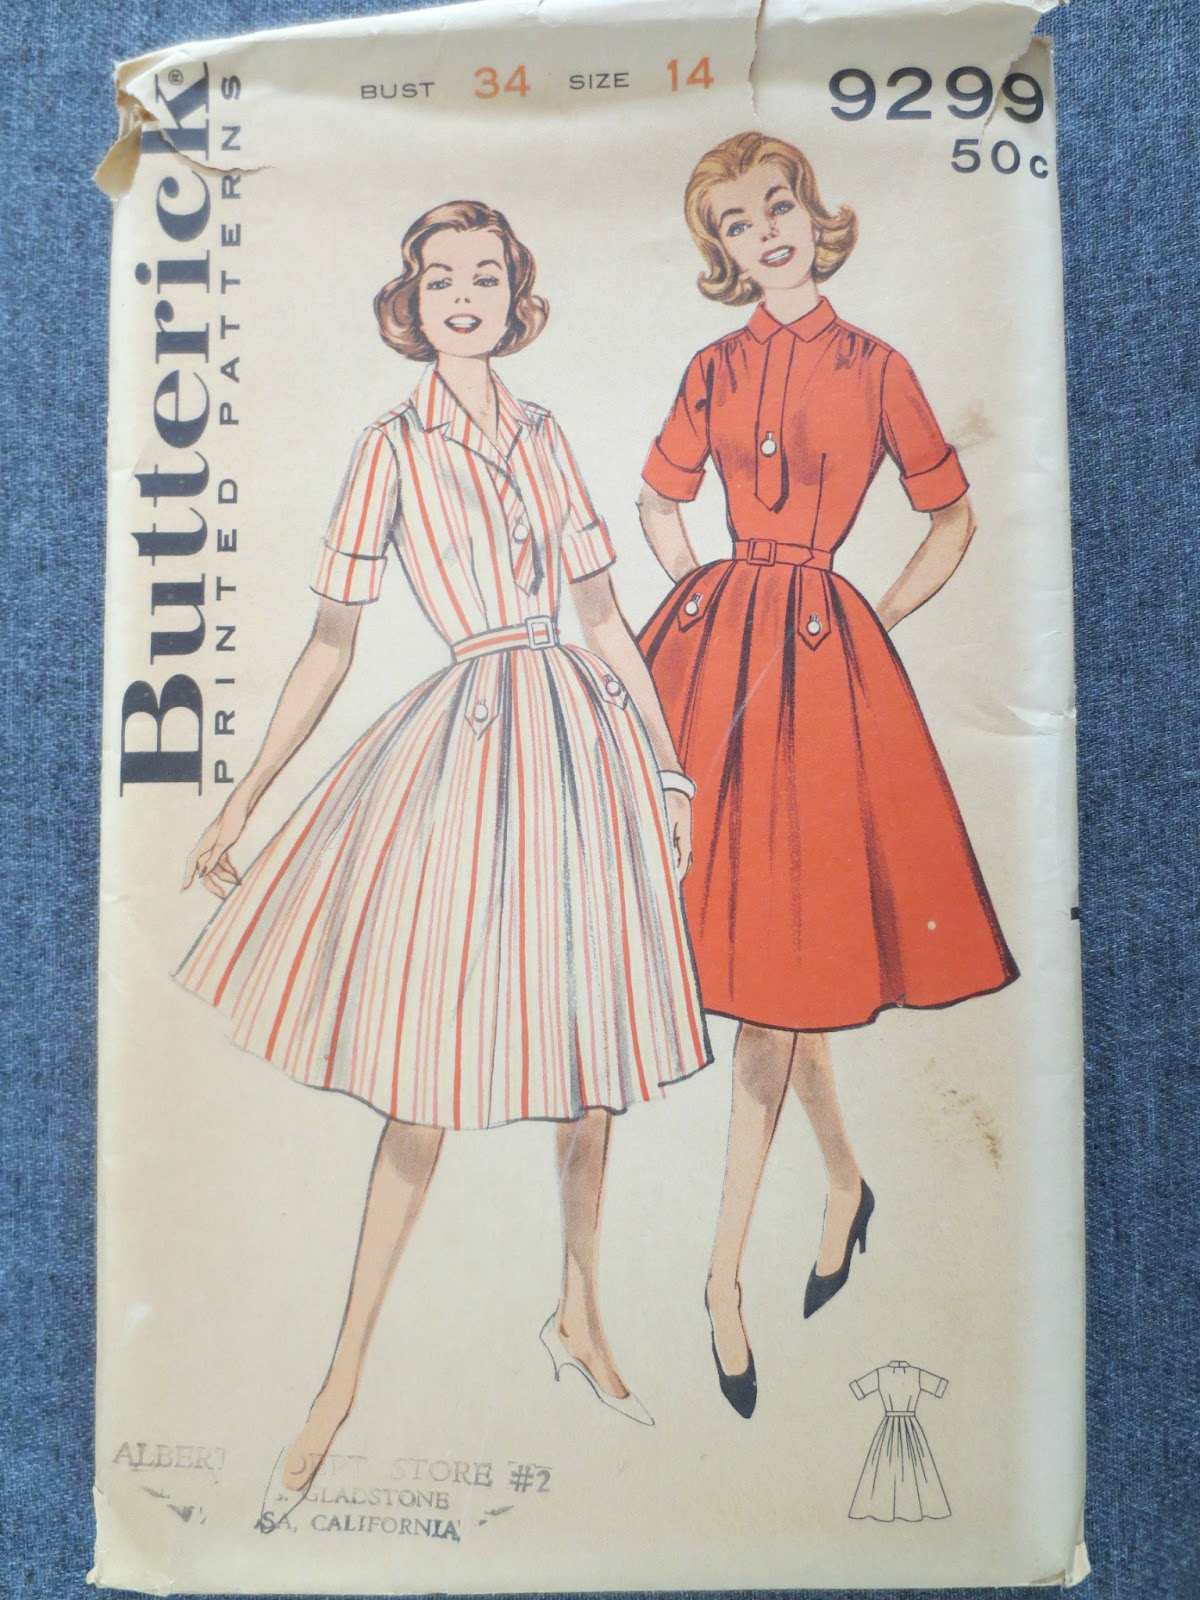 Butterick 9299 via Brentwood Lane